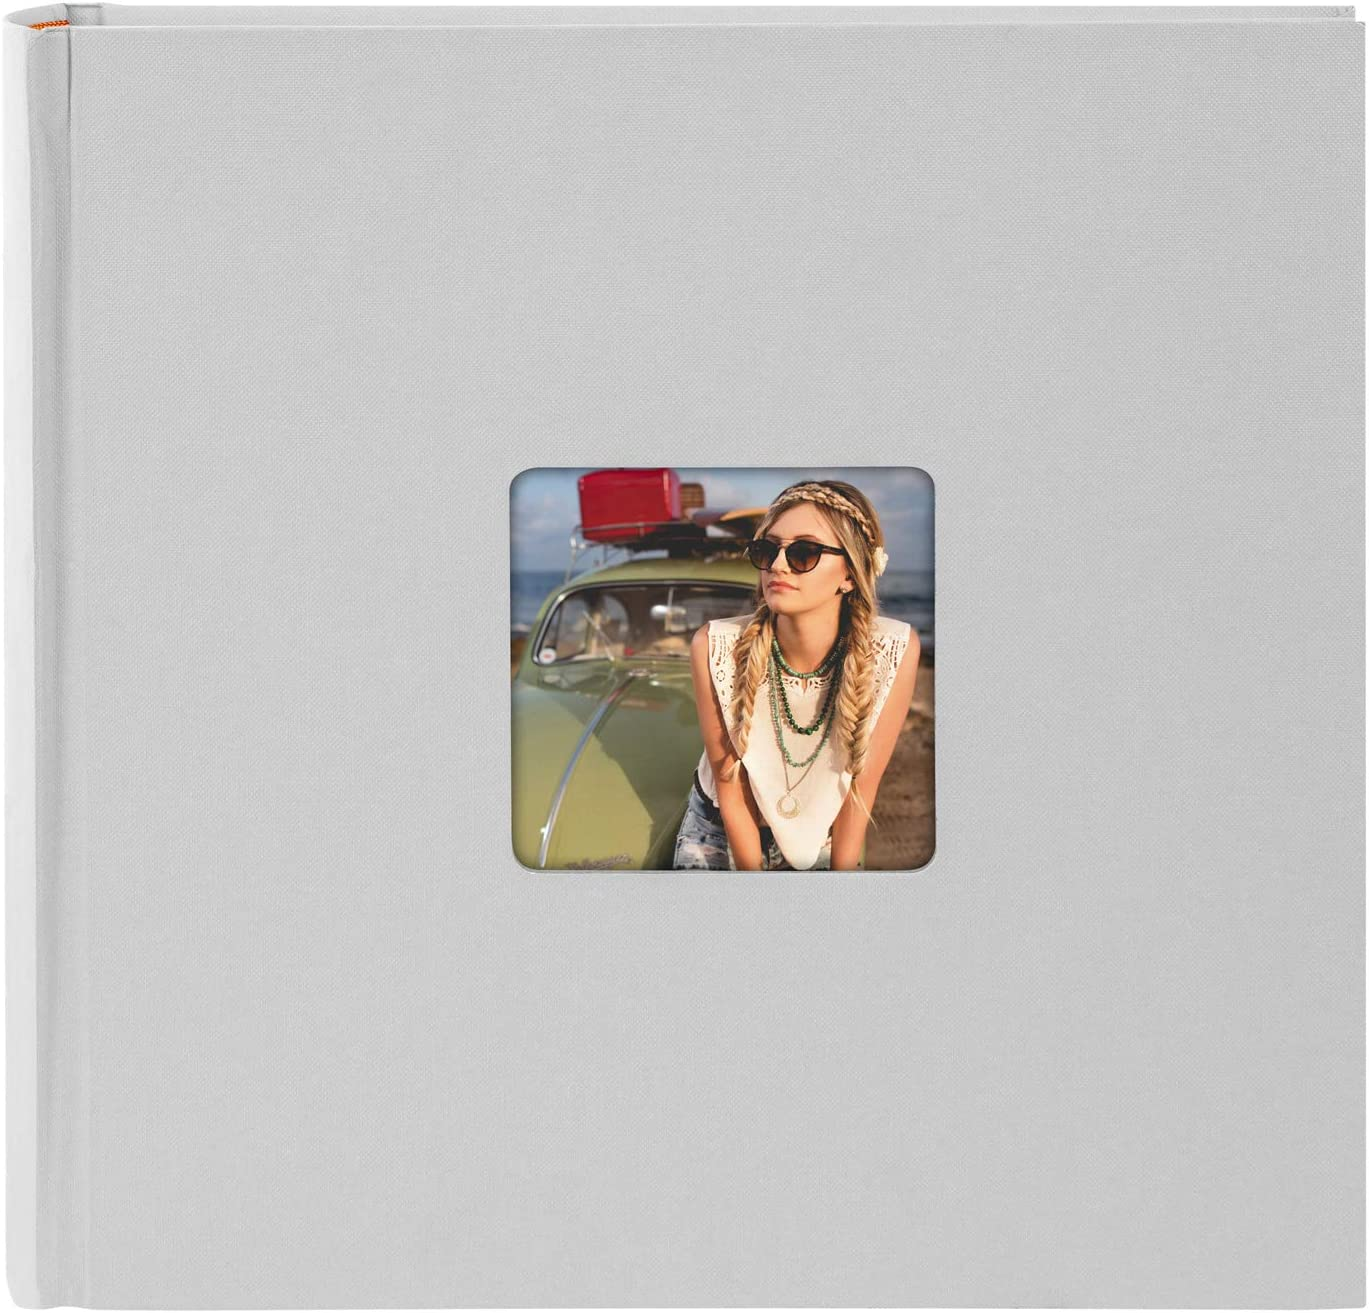 Photo Book with 36 White Pages with Parchment Dividers Approx Photo Album for Gluing in Linen Look Memory Album with Picture Cut-Out goldbuch Living 19894 Photo Album Blue 21.5 x 16.5 cm